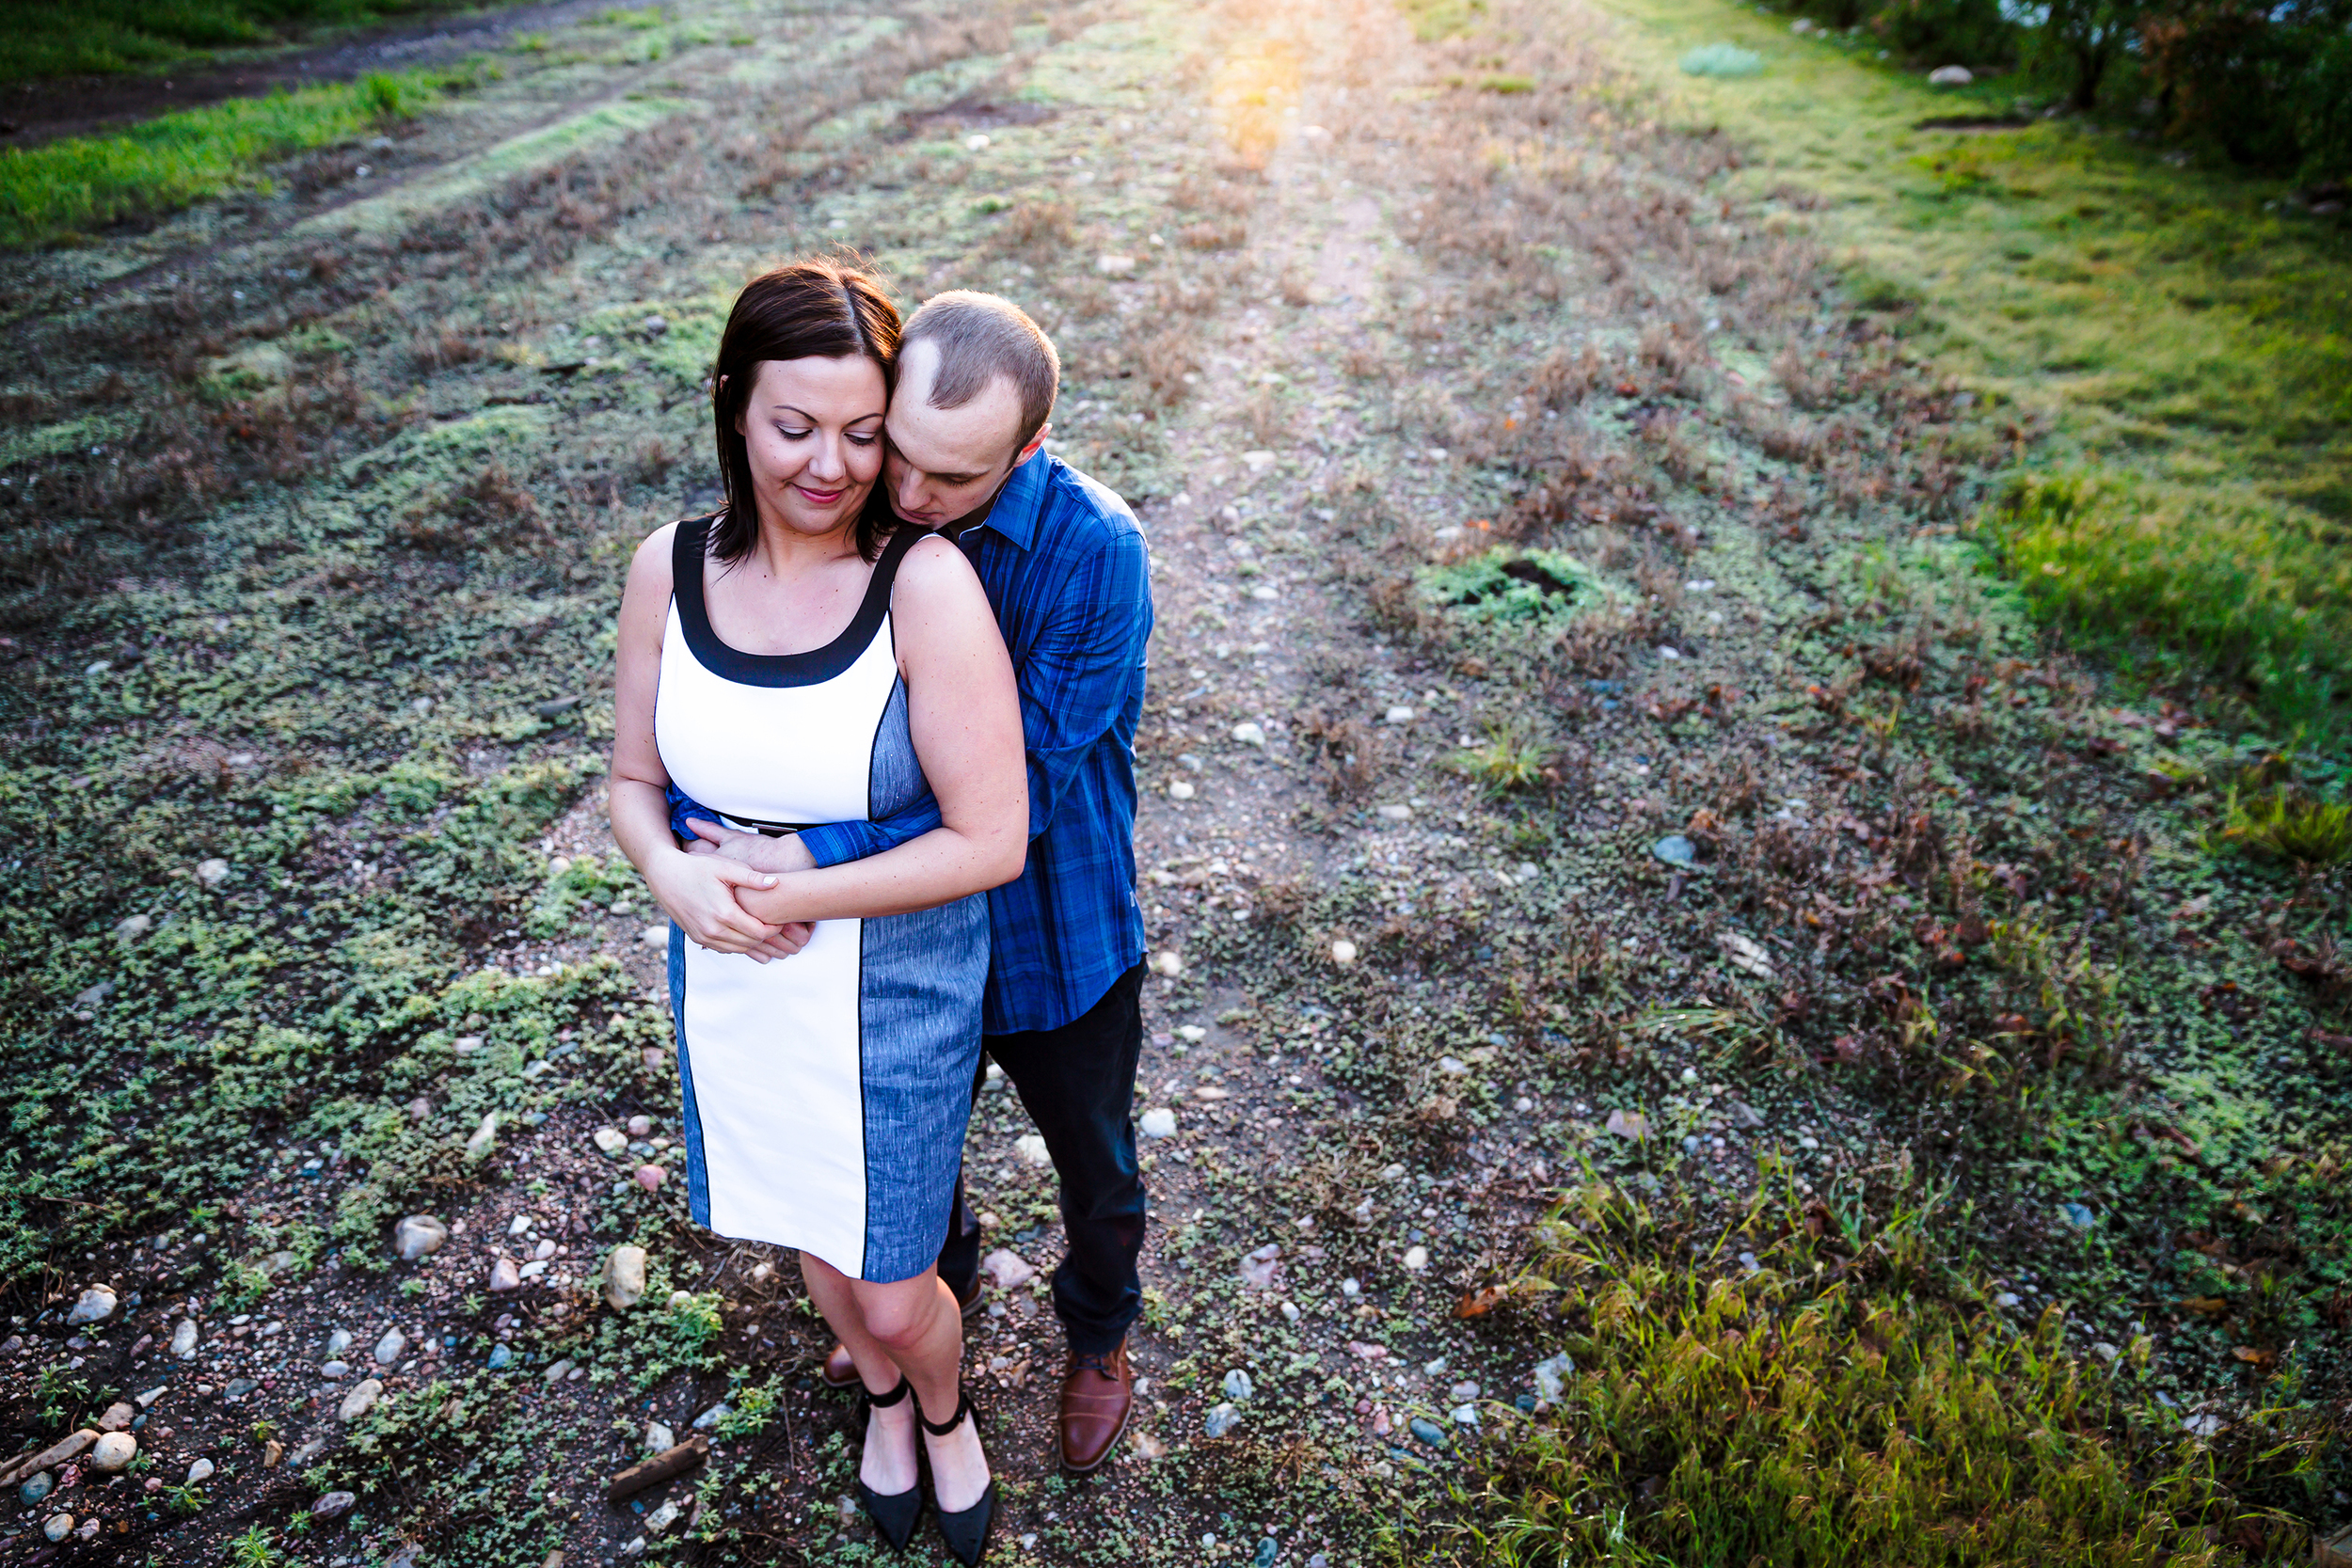 Rustic-Urban Fort Collins Engagement Photography by: Ashley McKenzie